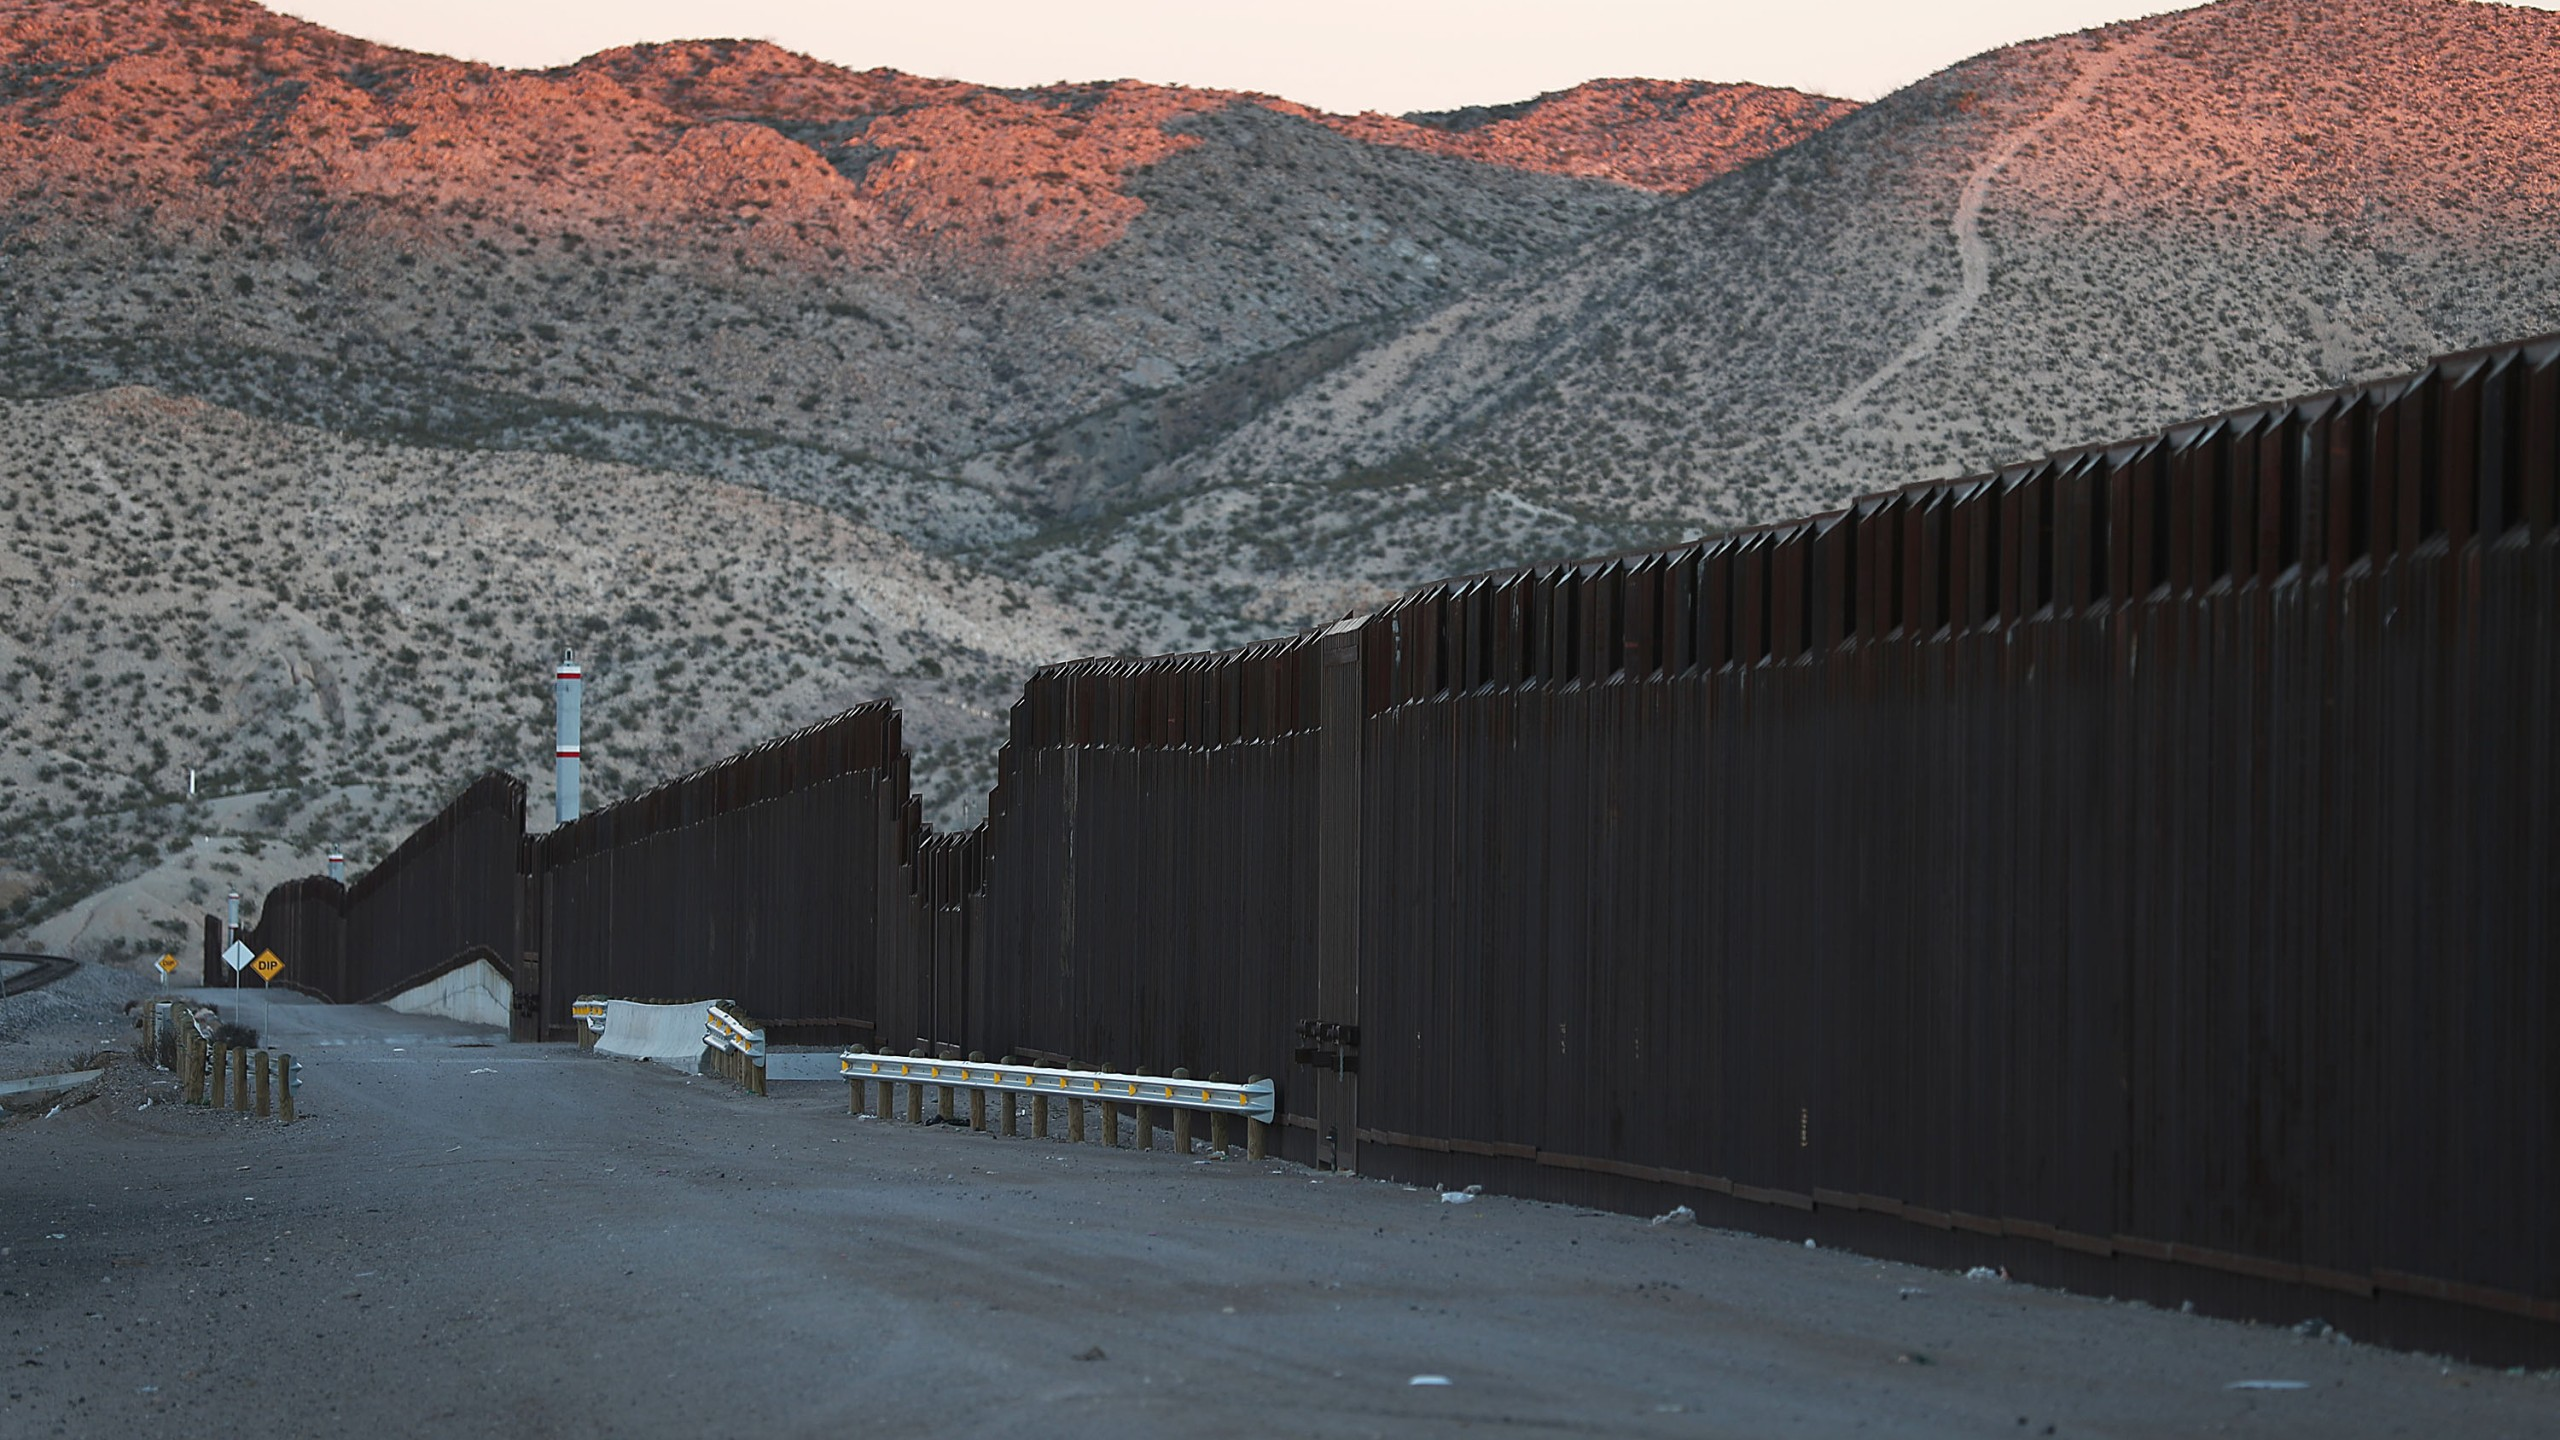 The U.S.-Mexico border fence is seen January 11, 2019 in Sunland Park, New Mexico. (Credit: Joe Raedle/Getty Images)